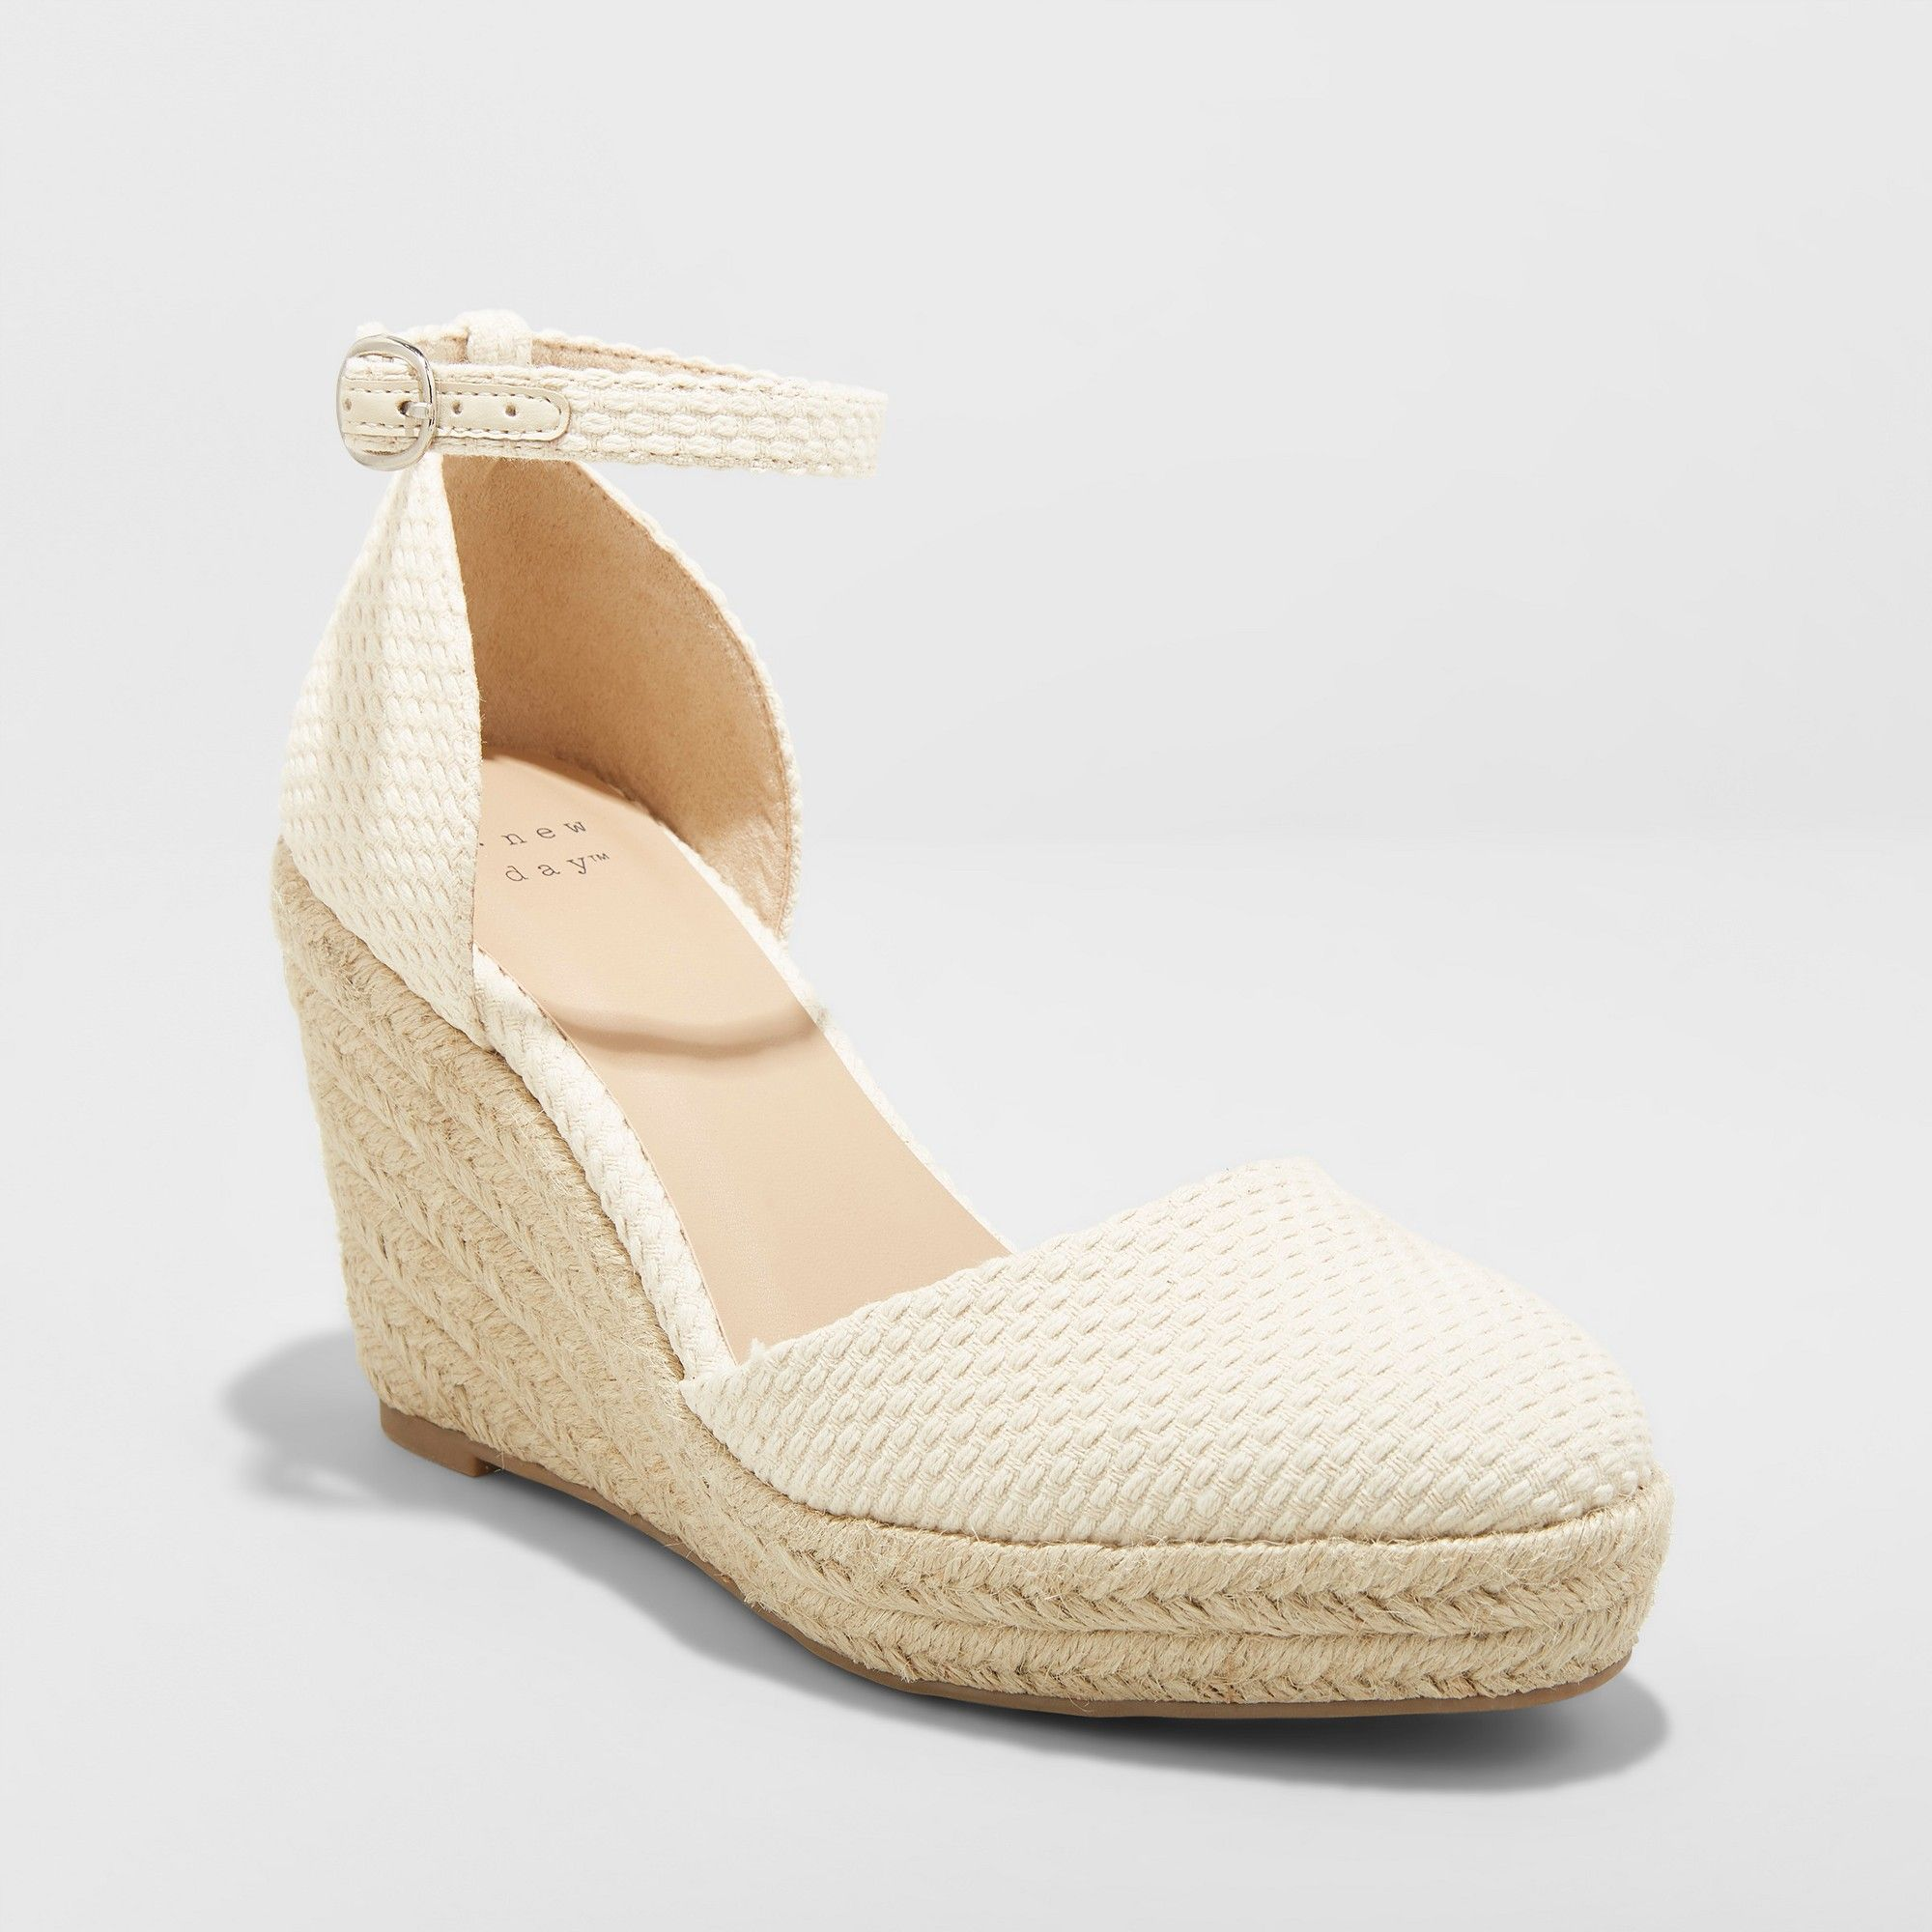 59ce0dbbb1 Women's Olivia D'Orsay Closed Toe Espadrille Wedge - A New Day Cream  (Ivory) 9